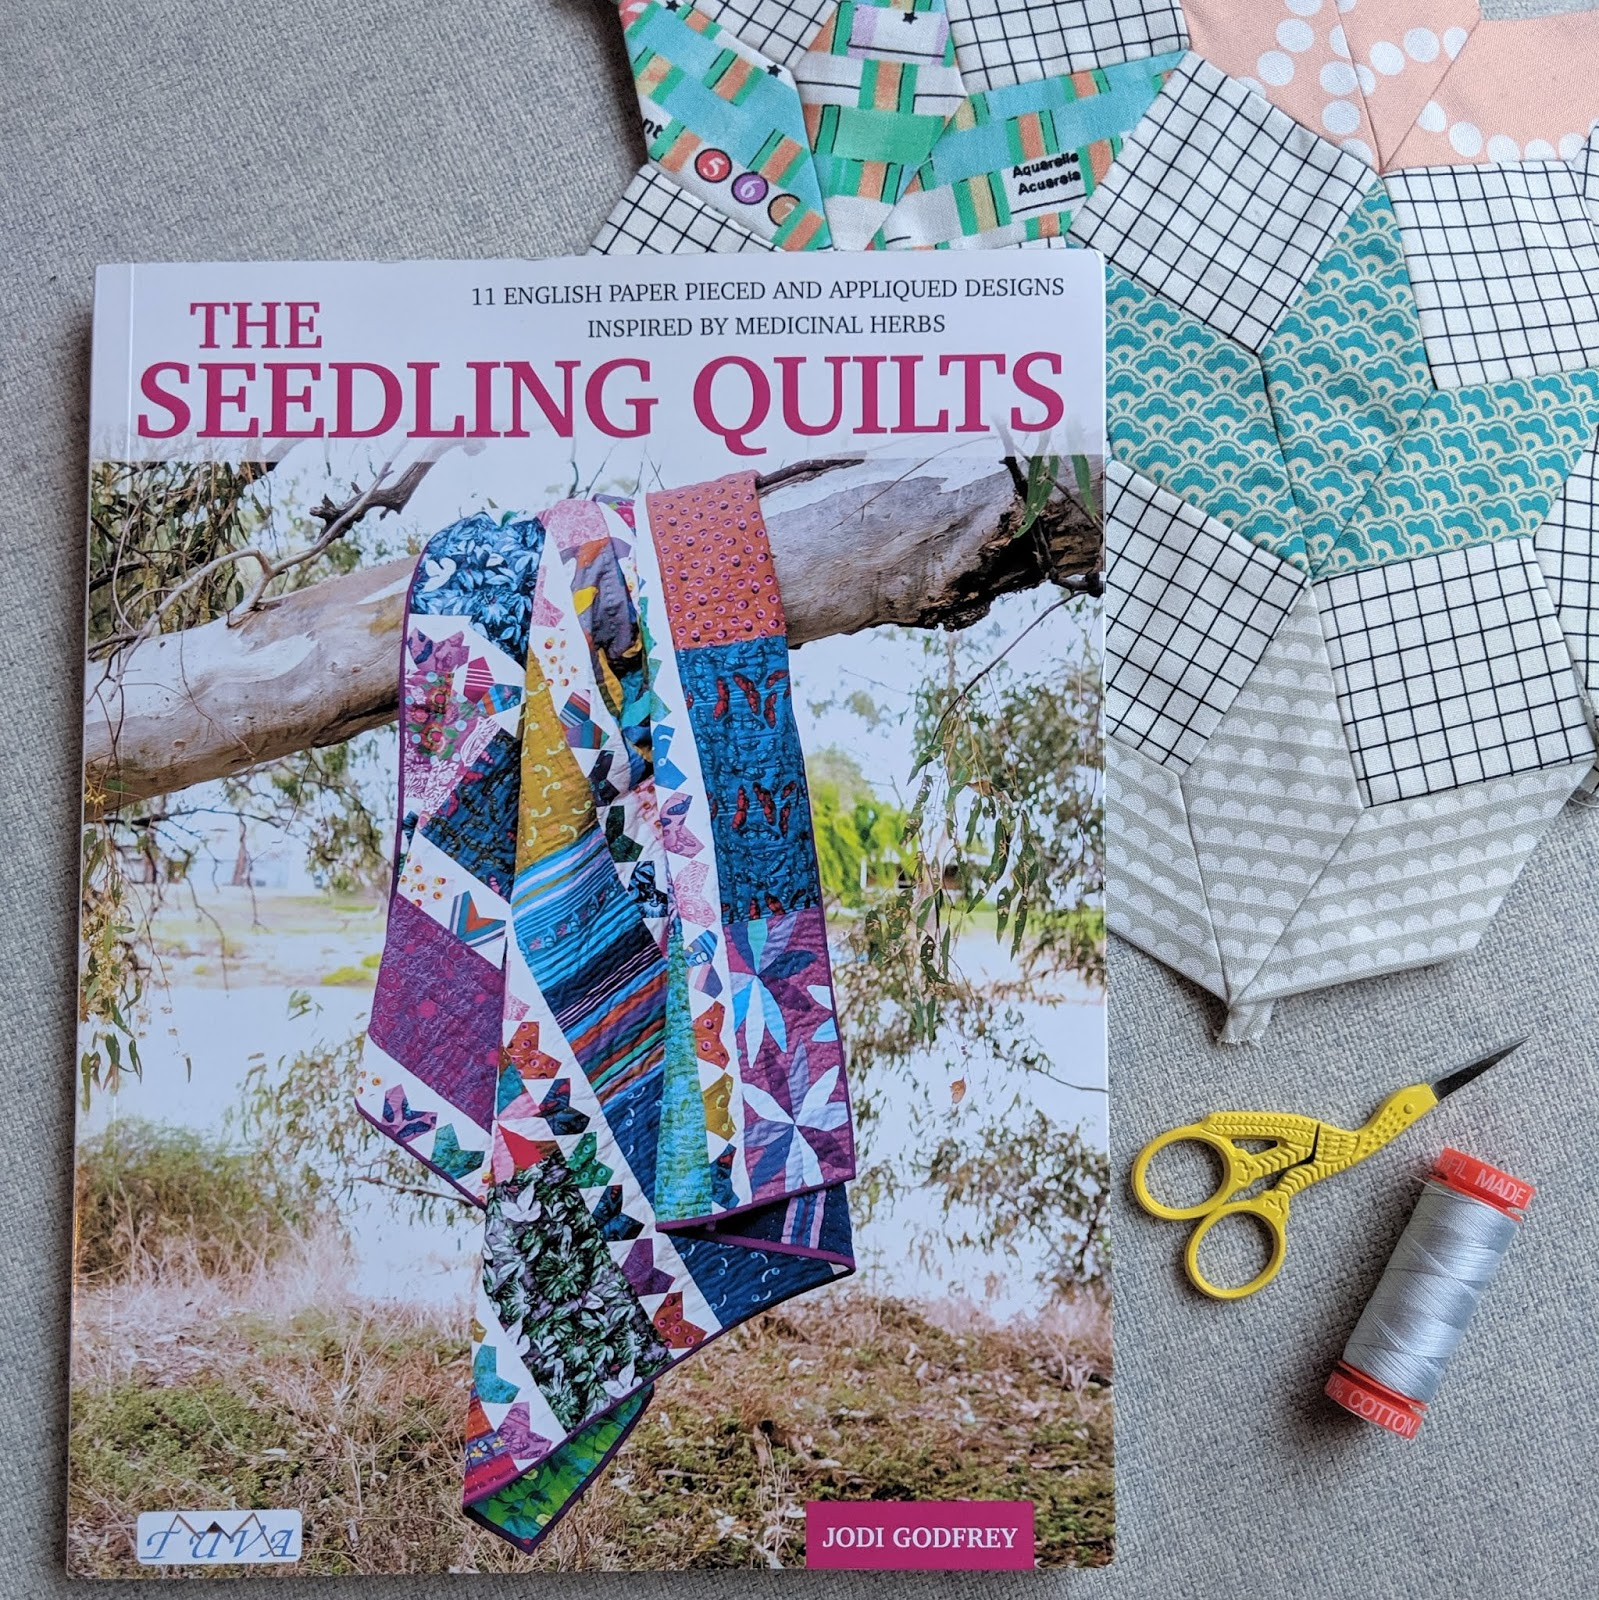 the seedling quilts book 🌱 peppermint: CHARM ABOUT YOU